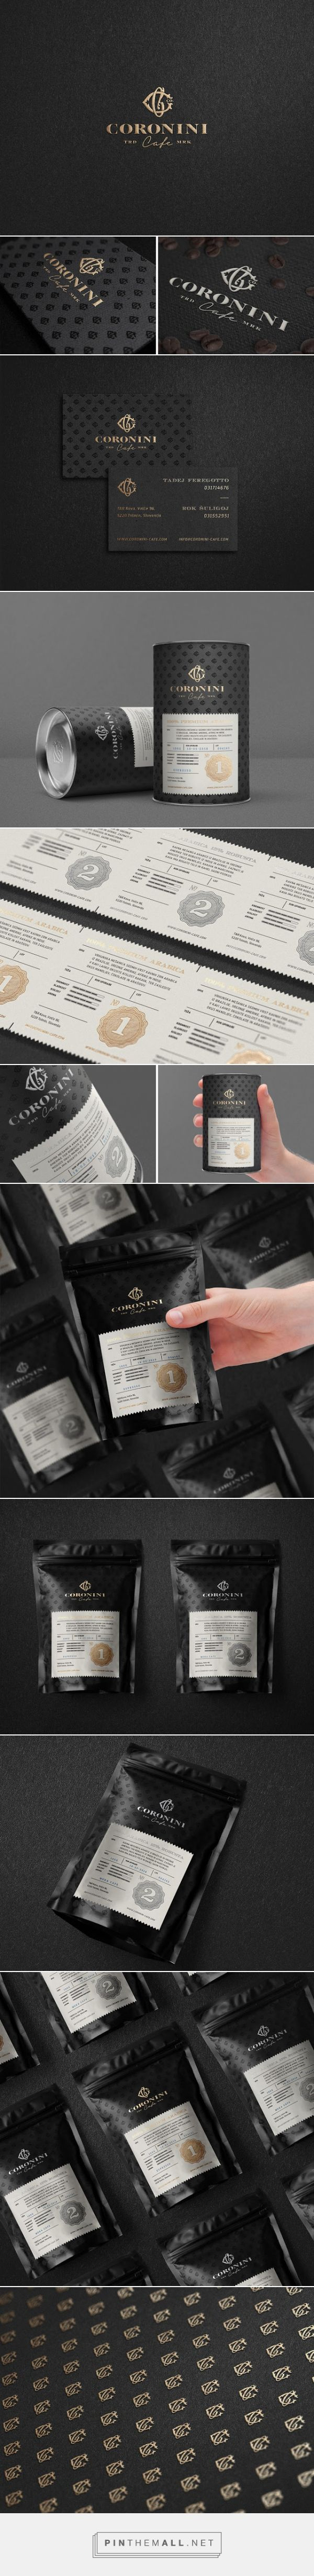 Coronini Cafe Coffee packaging designed by Milovanović (Slovenia) - http://www.packagingoftheworld.com/2016/02/coronini-cafe.html I really like this packaging, its subtle and highly aesthetically pleasing. the regal qualities that it has would appeal to achievers greatly. the mat black effect looks luxurious against the golden logo